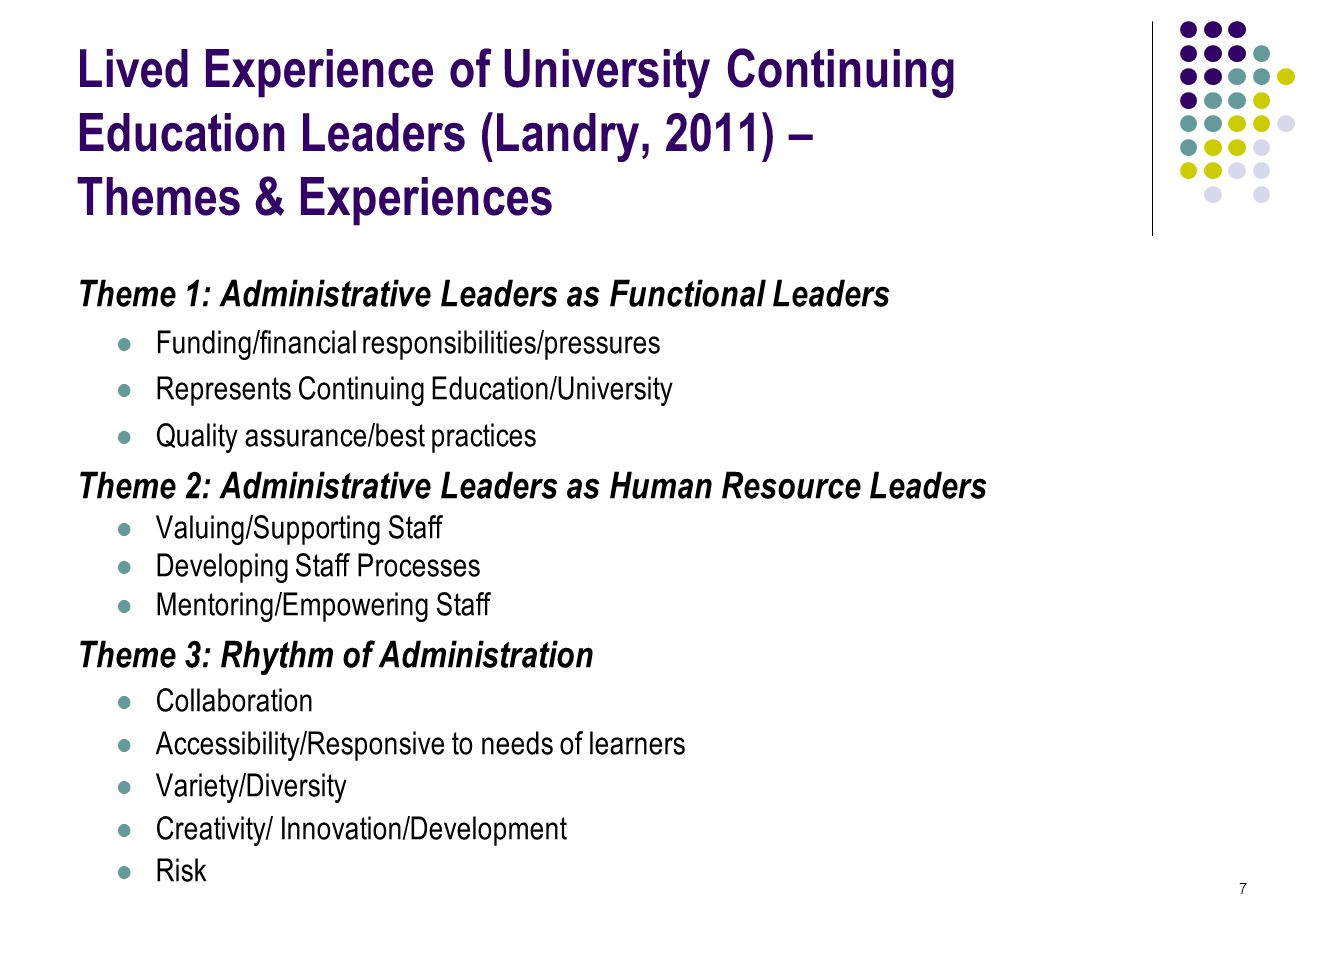 7 Lived Experience of University Continuing Education Leaders (Landry, 2011) – Themes & Experiences Theme 1: Administrative Leaders as Functional Leaders Funding/financial responsibilities/pressures Represents Continuing Education/University Quality assurance/best practices Theme 2: Administrative Leaders as Human Resource Leaders Valuing/Supporting Staff Developing Staff Processes Mentoring/Empowering Staff Theme 3: Rhythm of Administration Collaboration Accessibility/Responsive to needs of learners Variety/Diversity Creativity/ Innovation/Development Risk